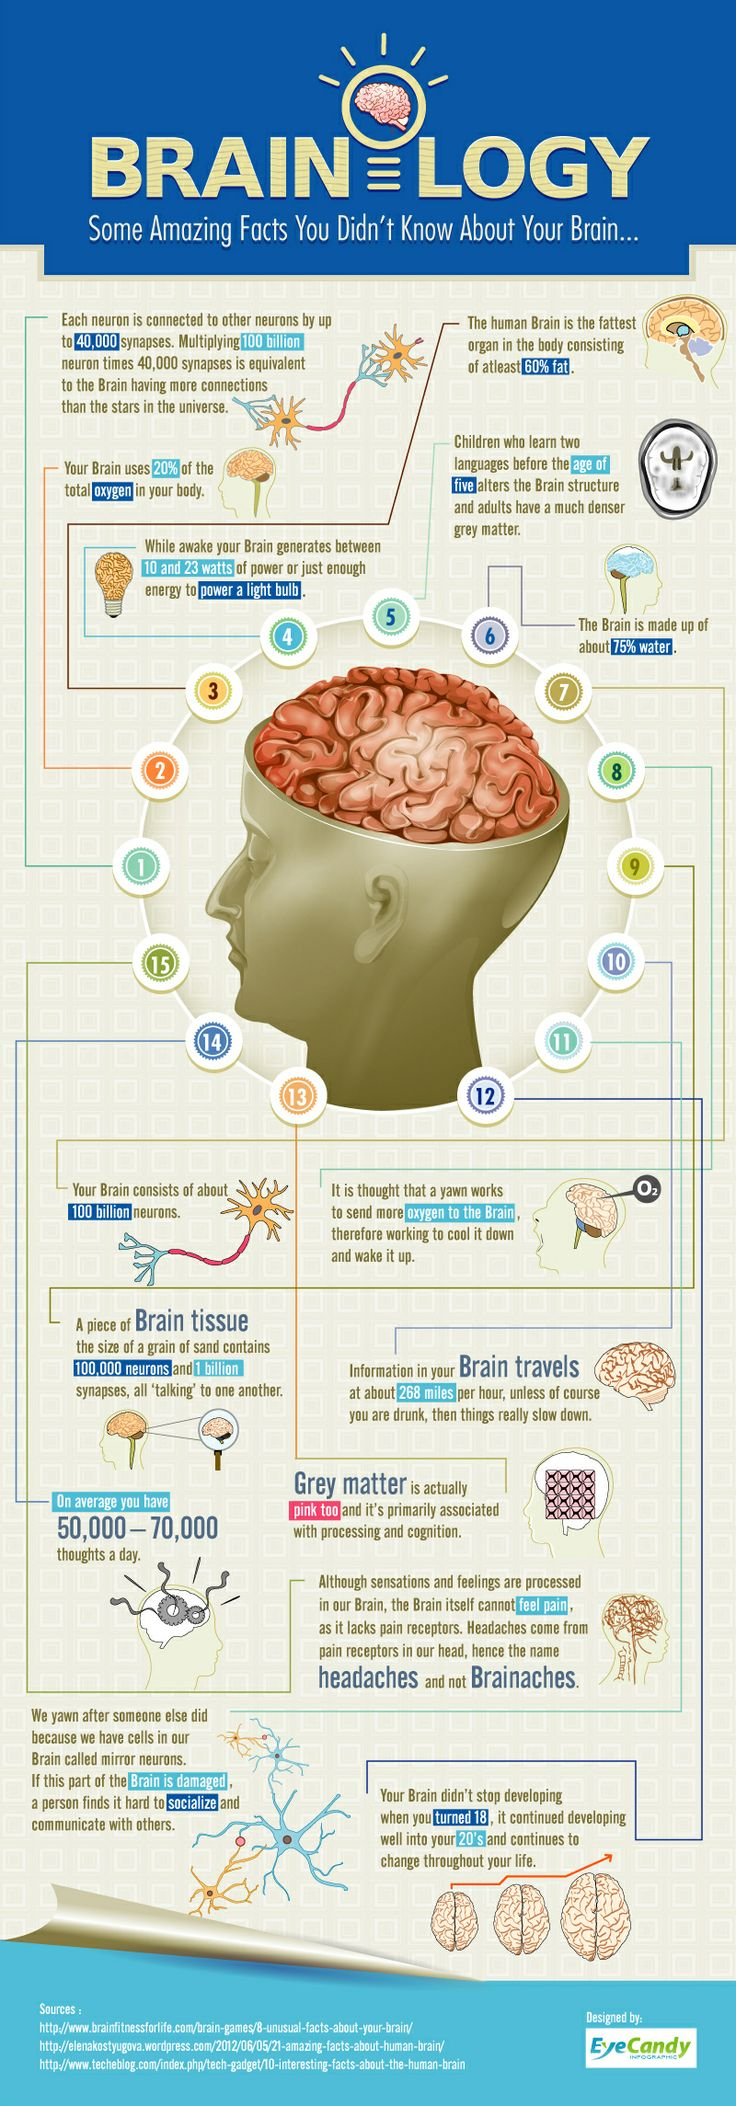 Some Amazing Facts That You Didn't Know About Your Brain